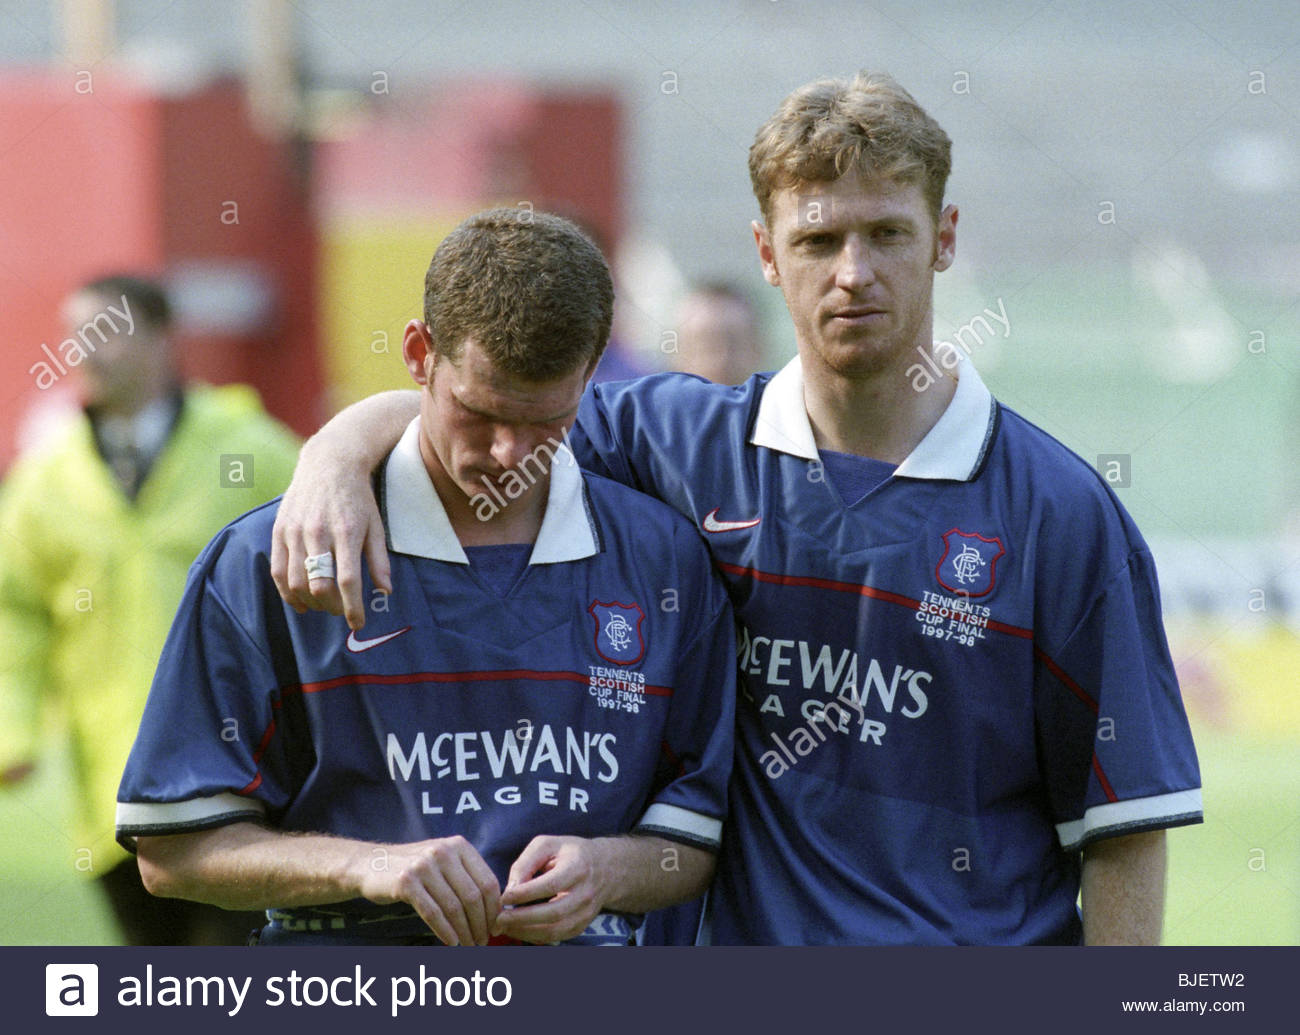 16/05/98 TENNENT'S SCOTTISH CUP FINAL HEARTS V RANGERS (2-1) CELTIC PARK - GLASGOW Ian Durrant (left) is consoled - Stock Image